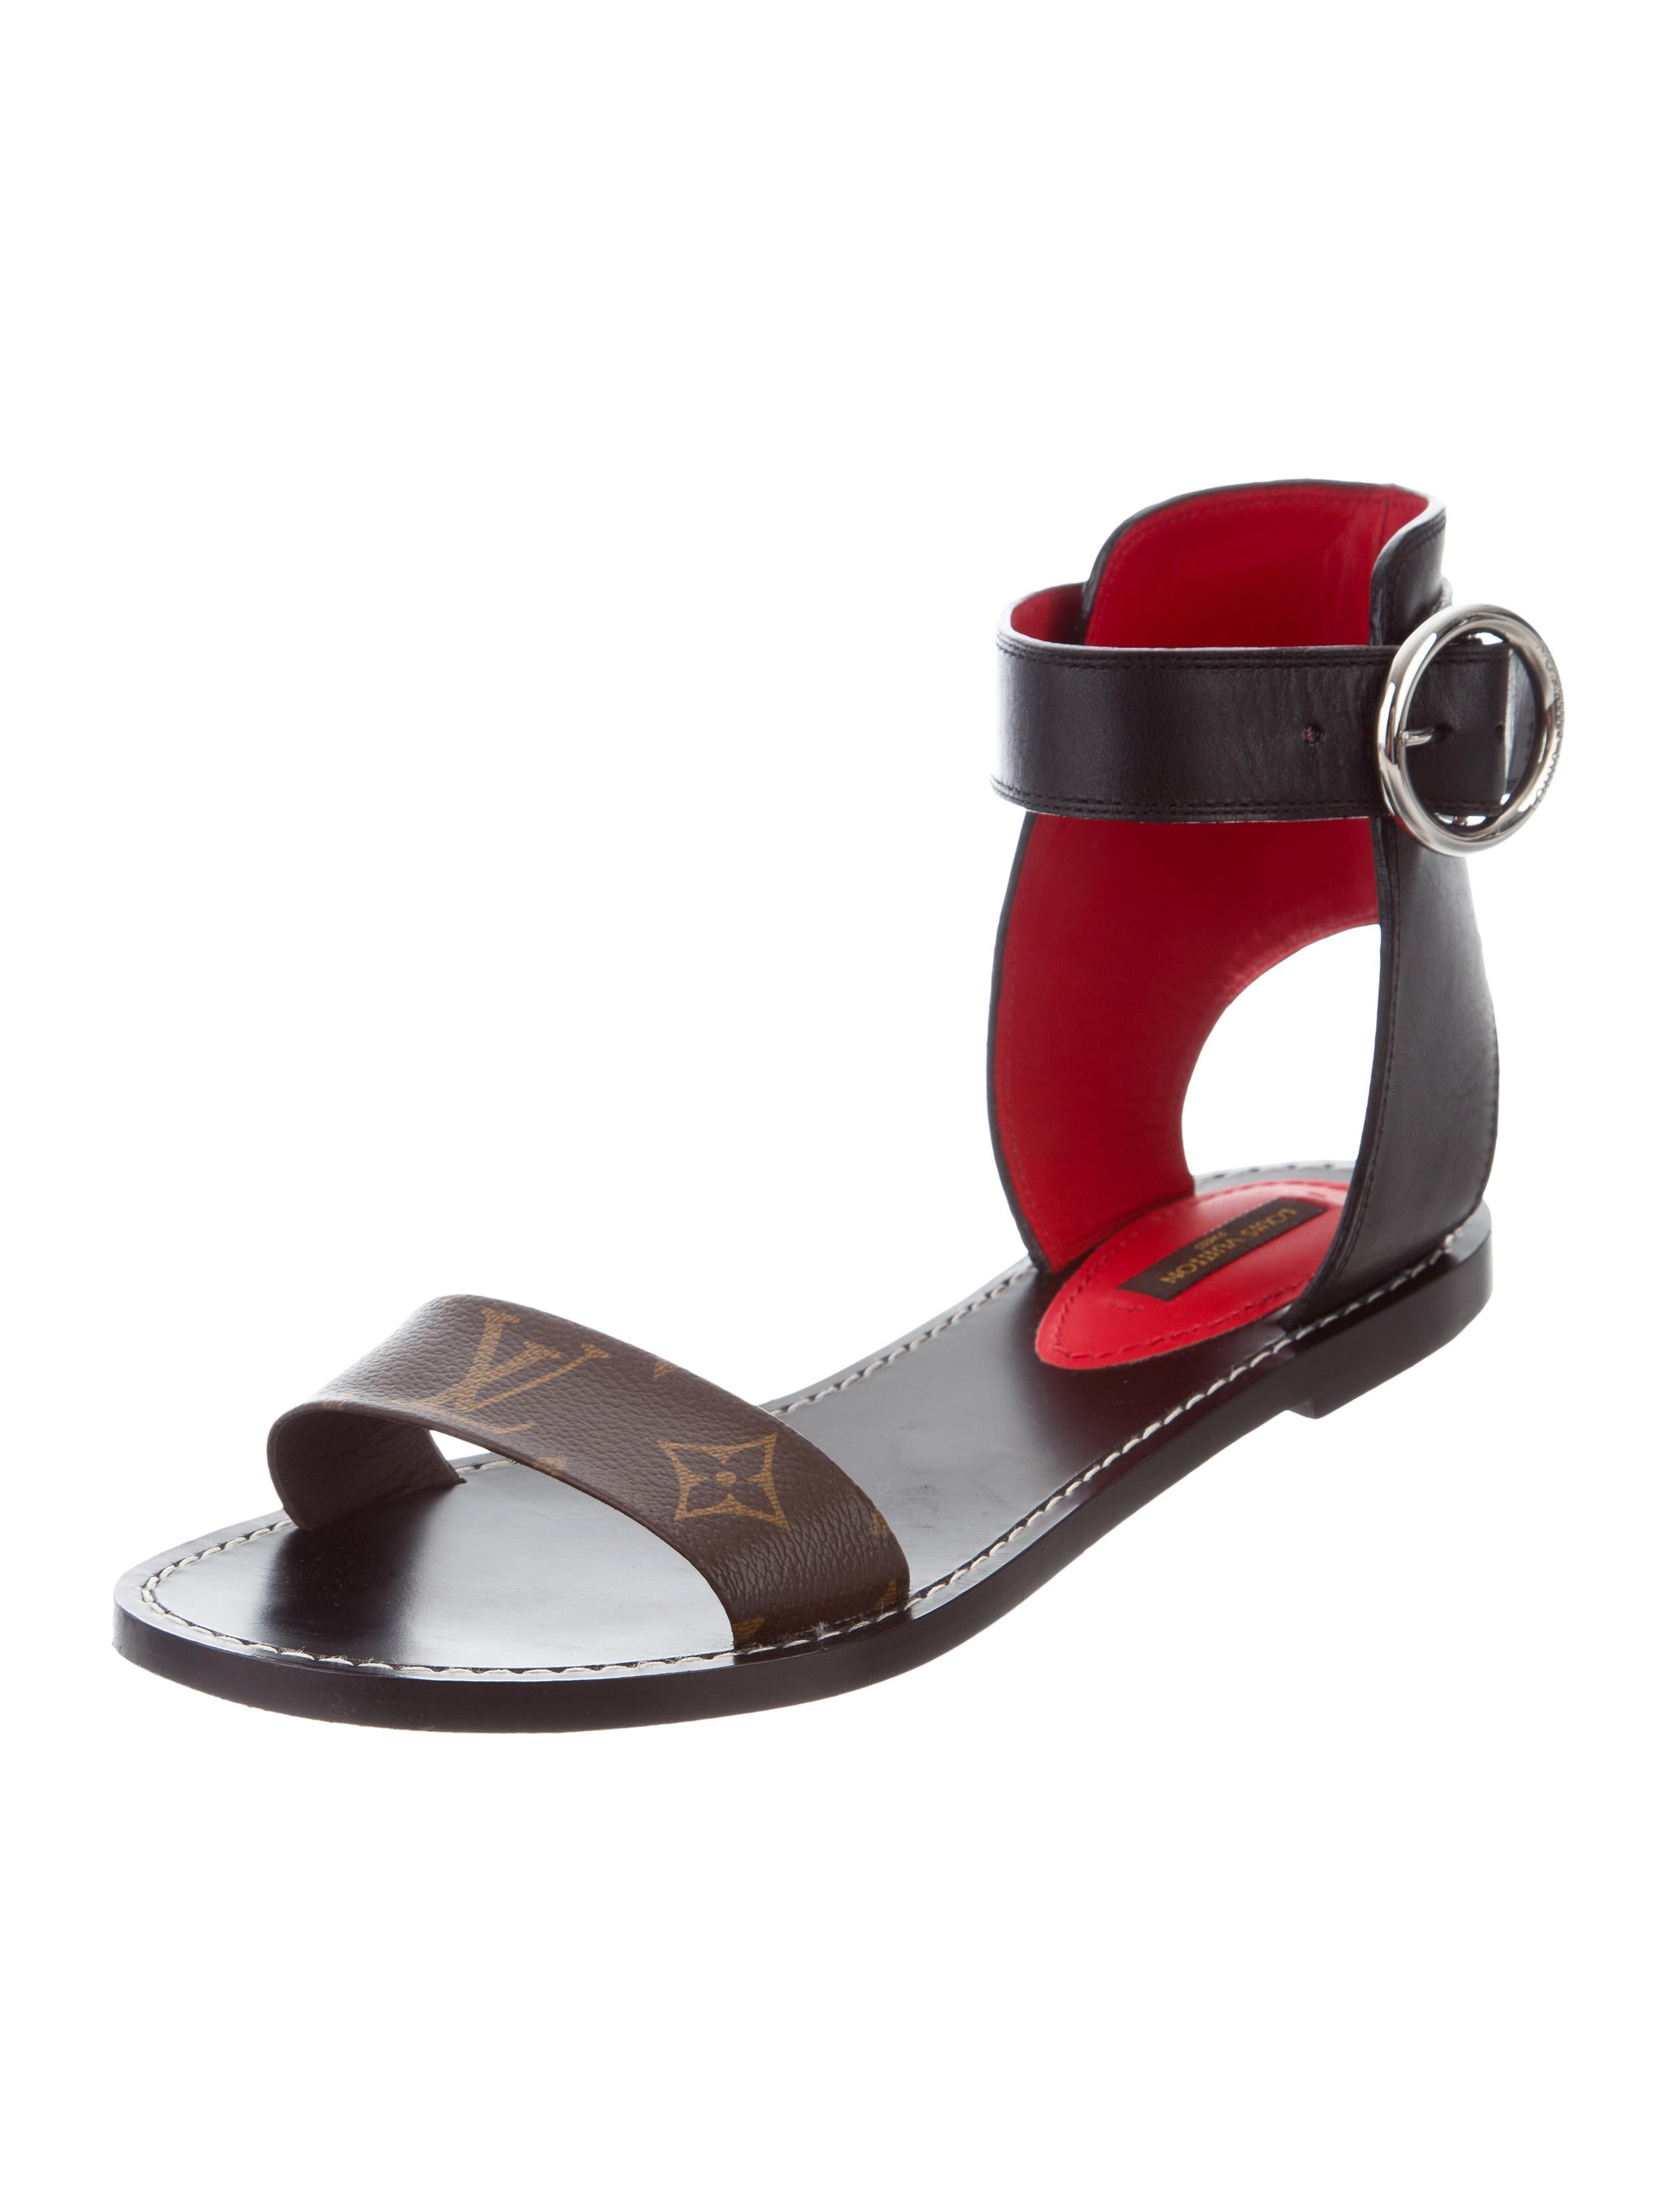 Louis Vuitton Monogram Trimmed Leather Sandals Shoes  : LOU1299252enlarged from www.therealreal.com size 2467 x 3255 jpeg 209kB